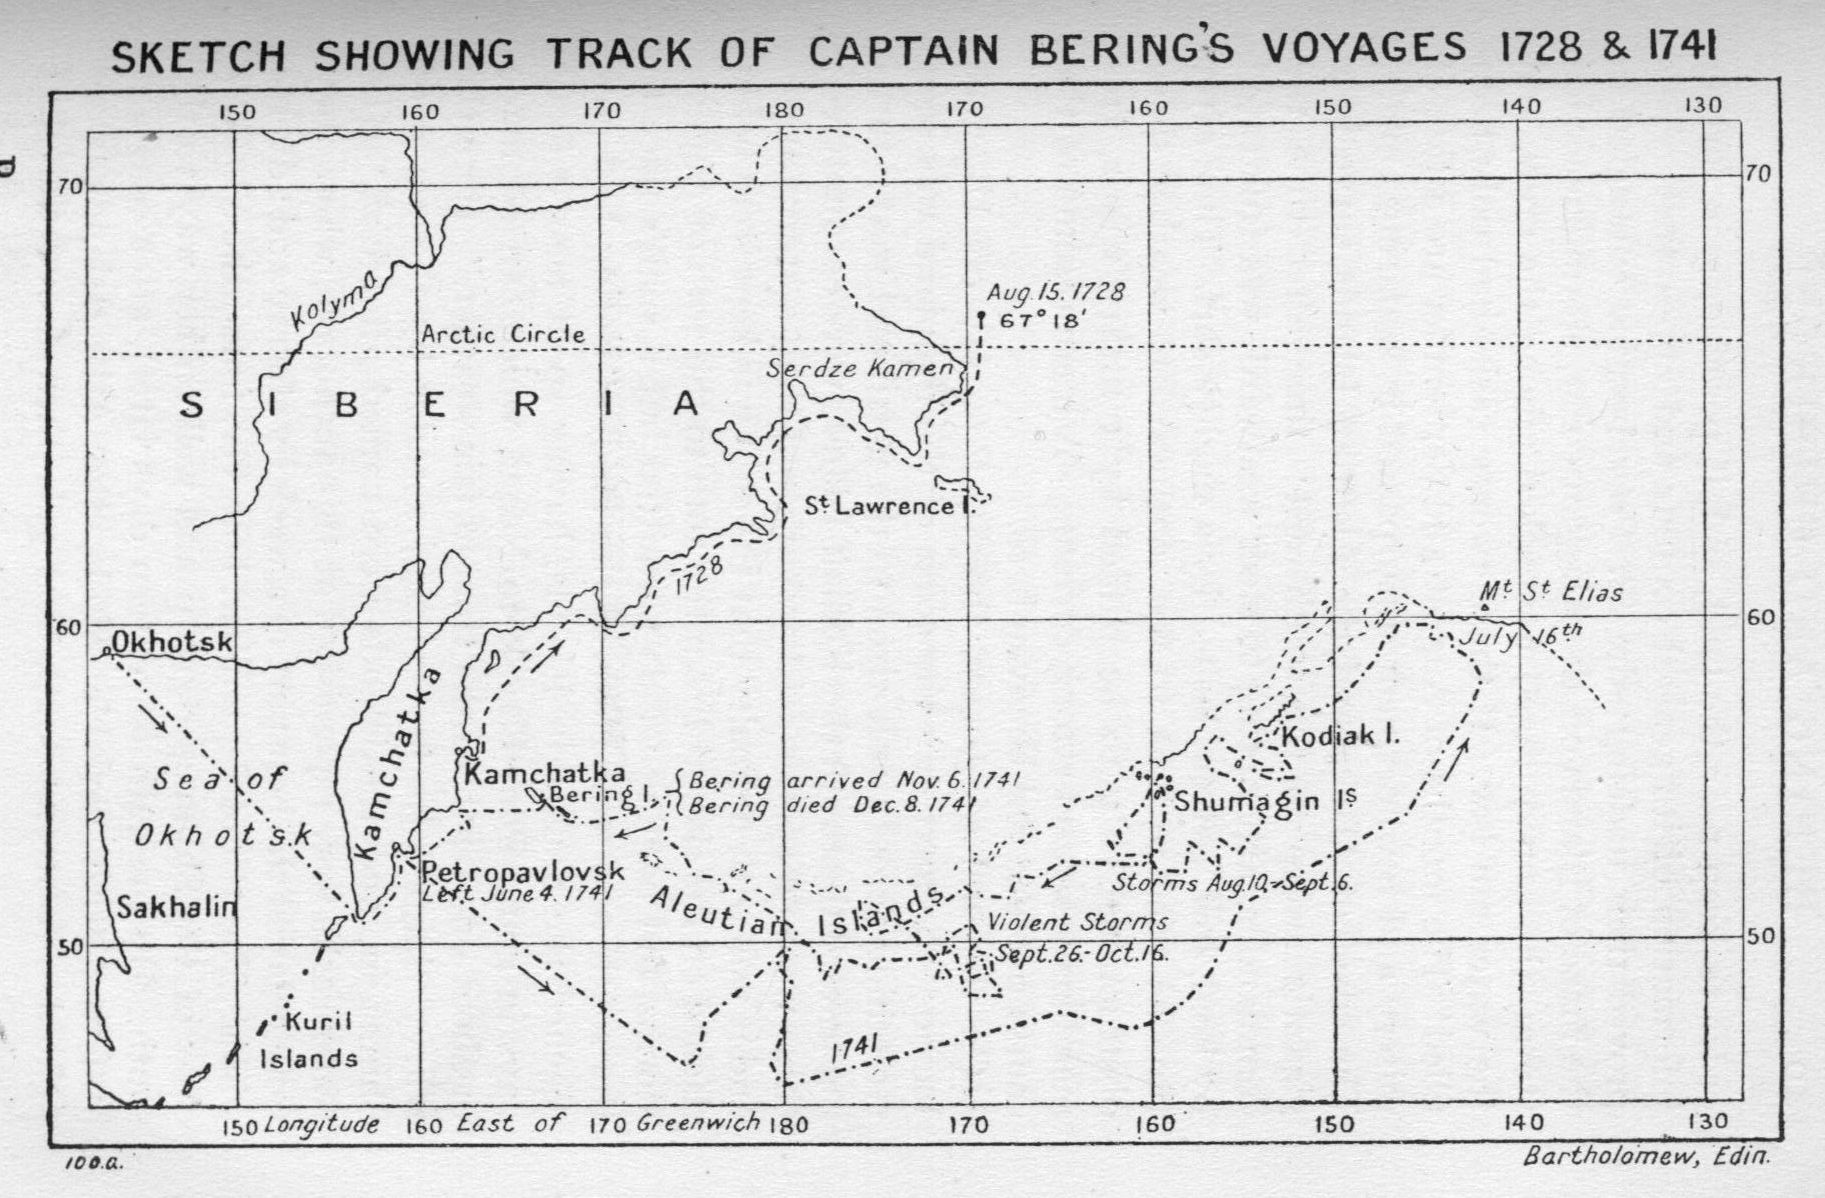 The Far West Coast By V L Denton Champion 171 Bass Boat Wiring Diagram Sketch Showing Track Of Captain Berings Voyages 1728 1741